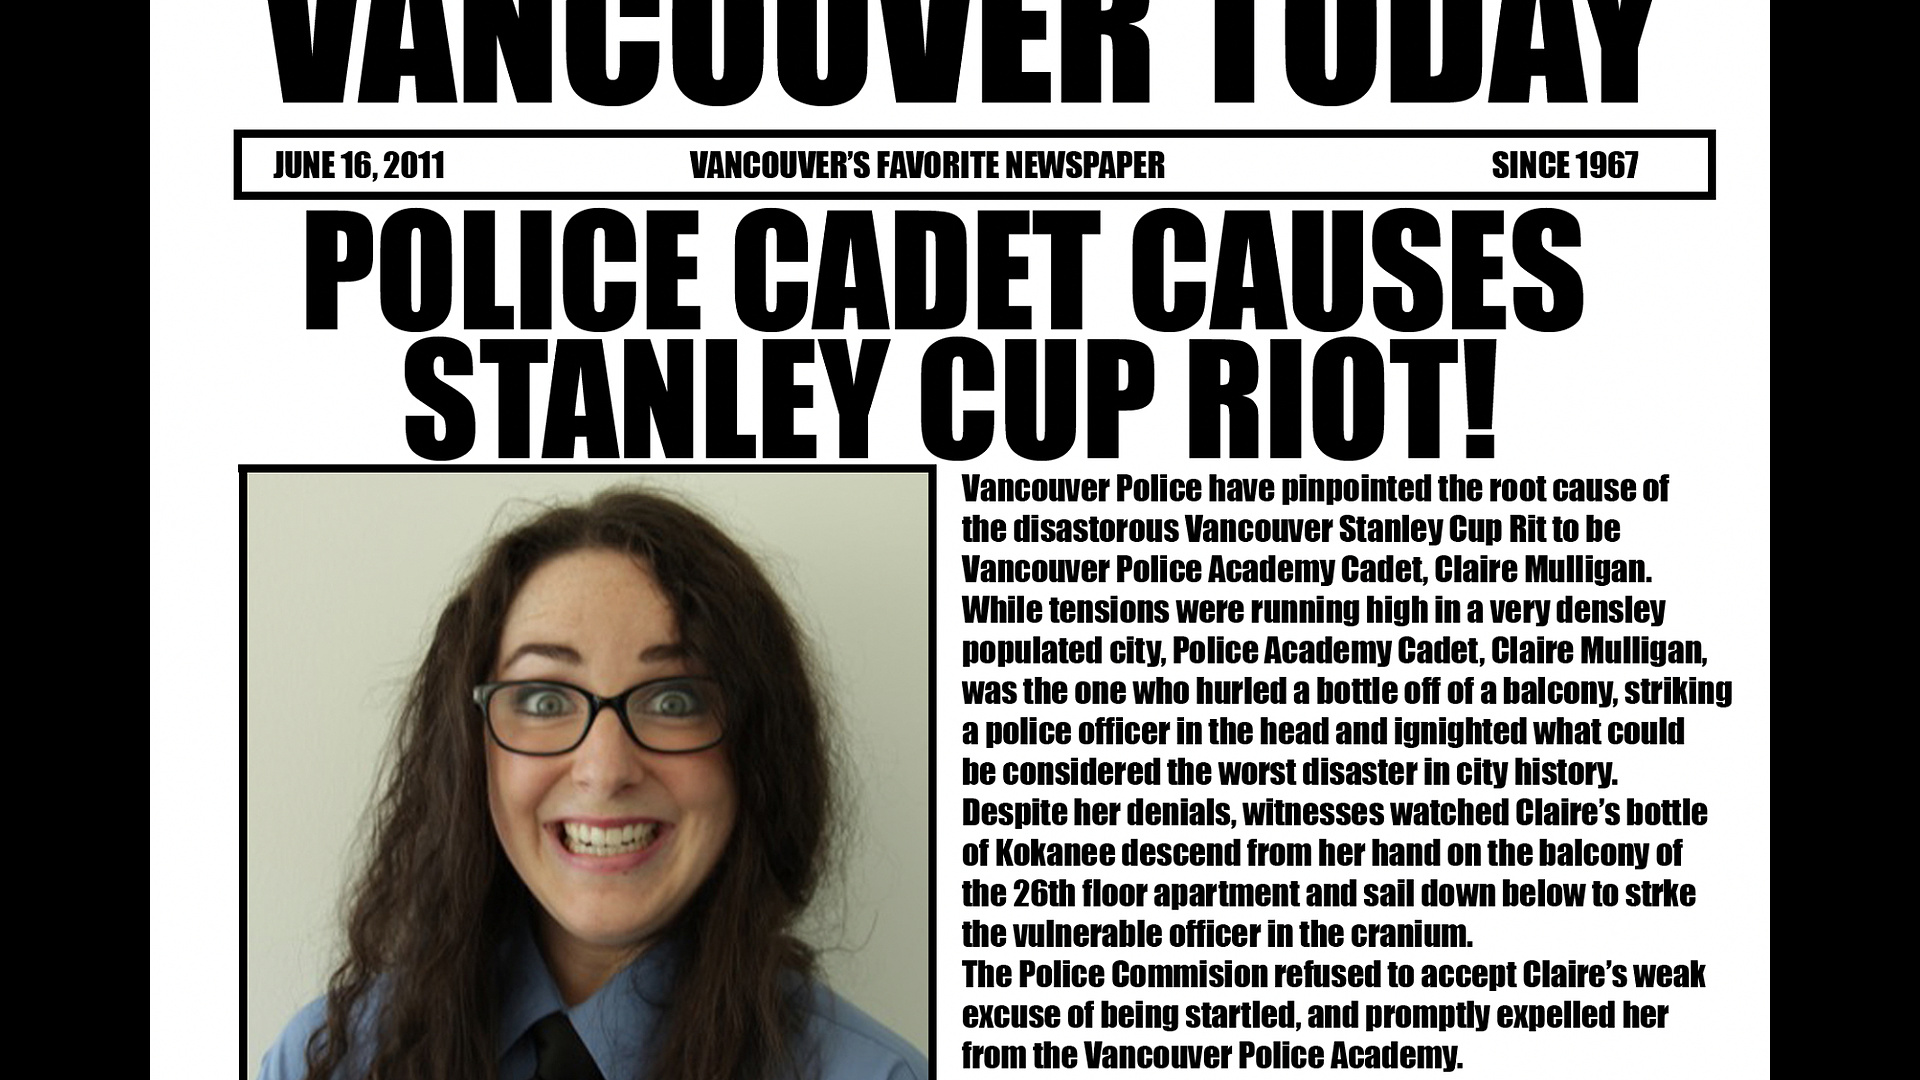 Cadet causes the Stanley Cup riot